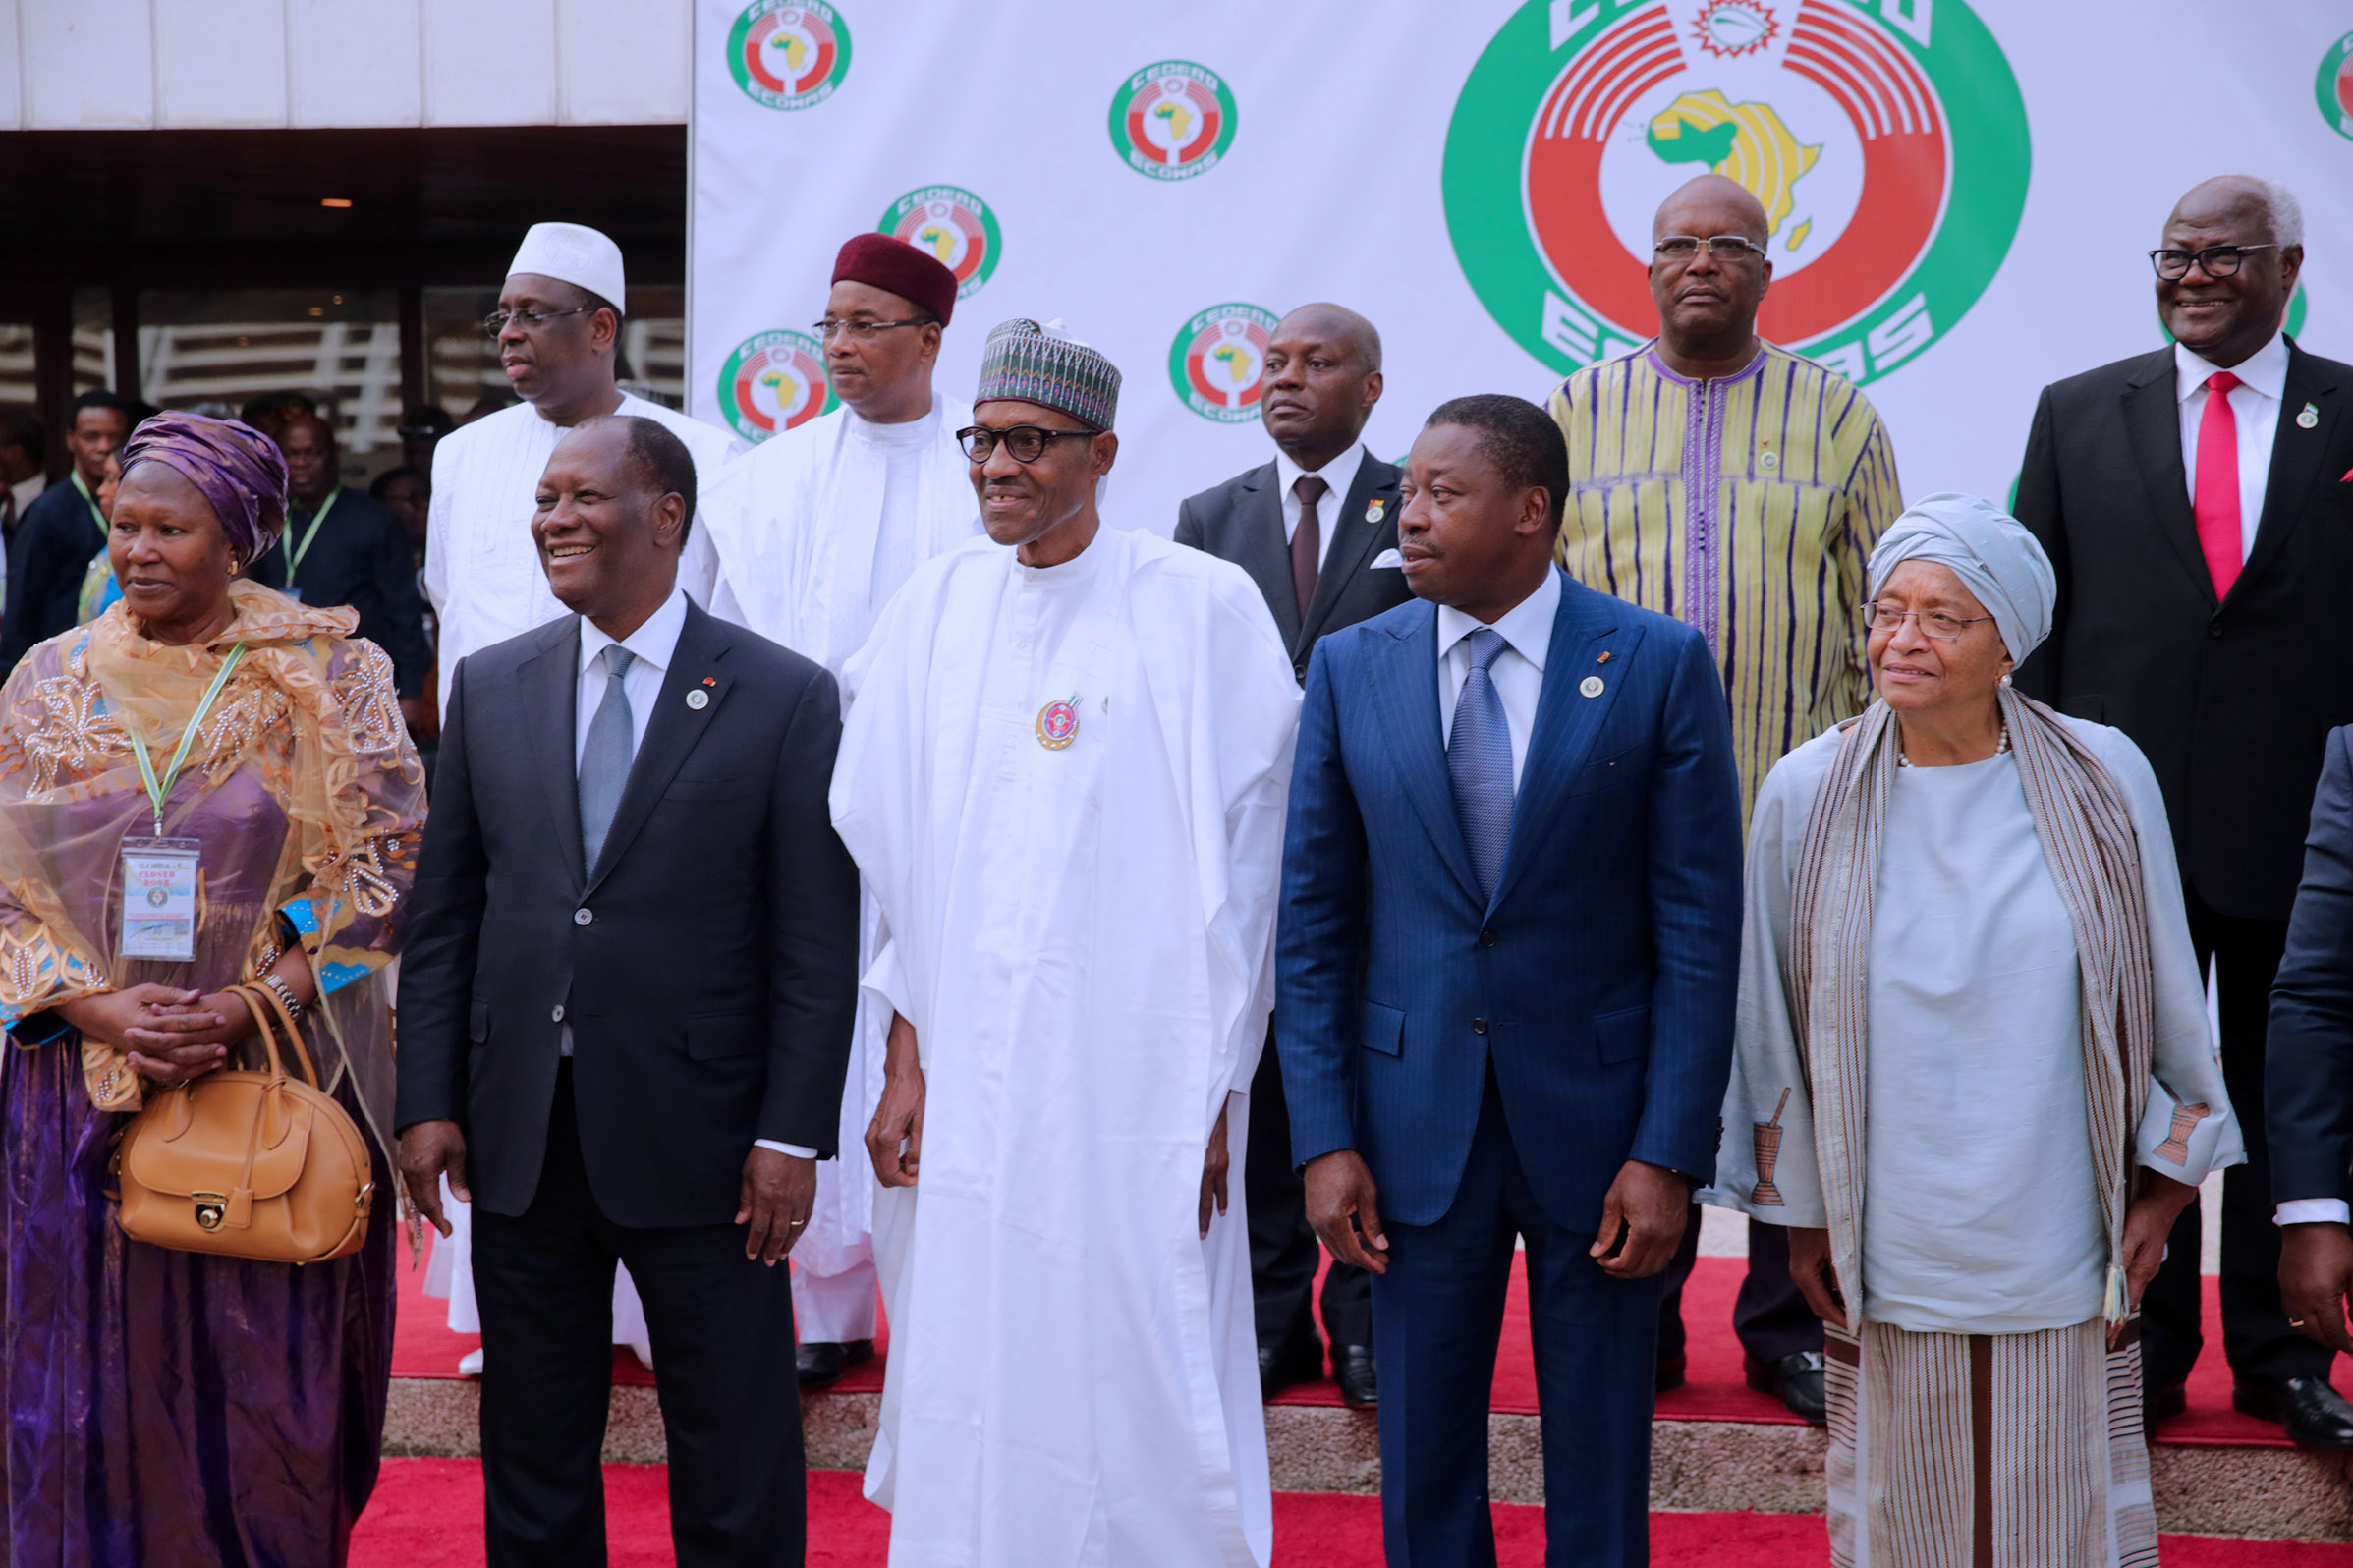 Image result for Ecowas pictures